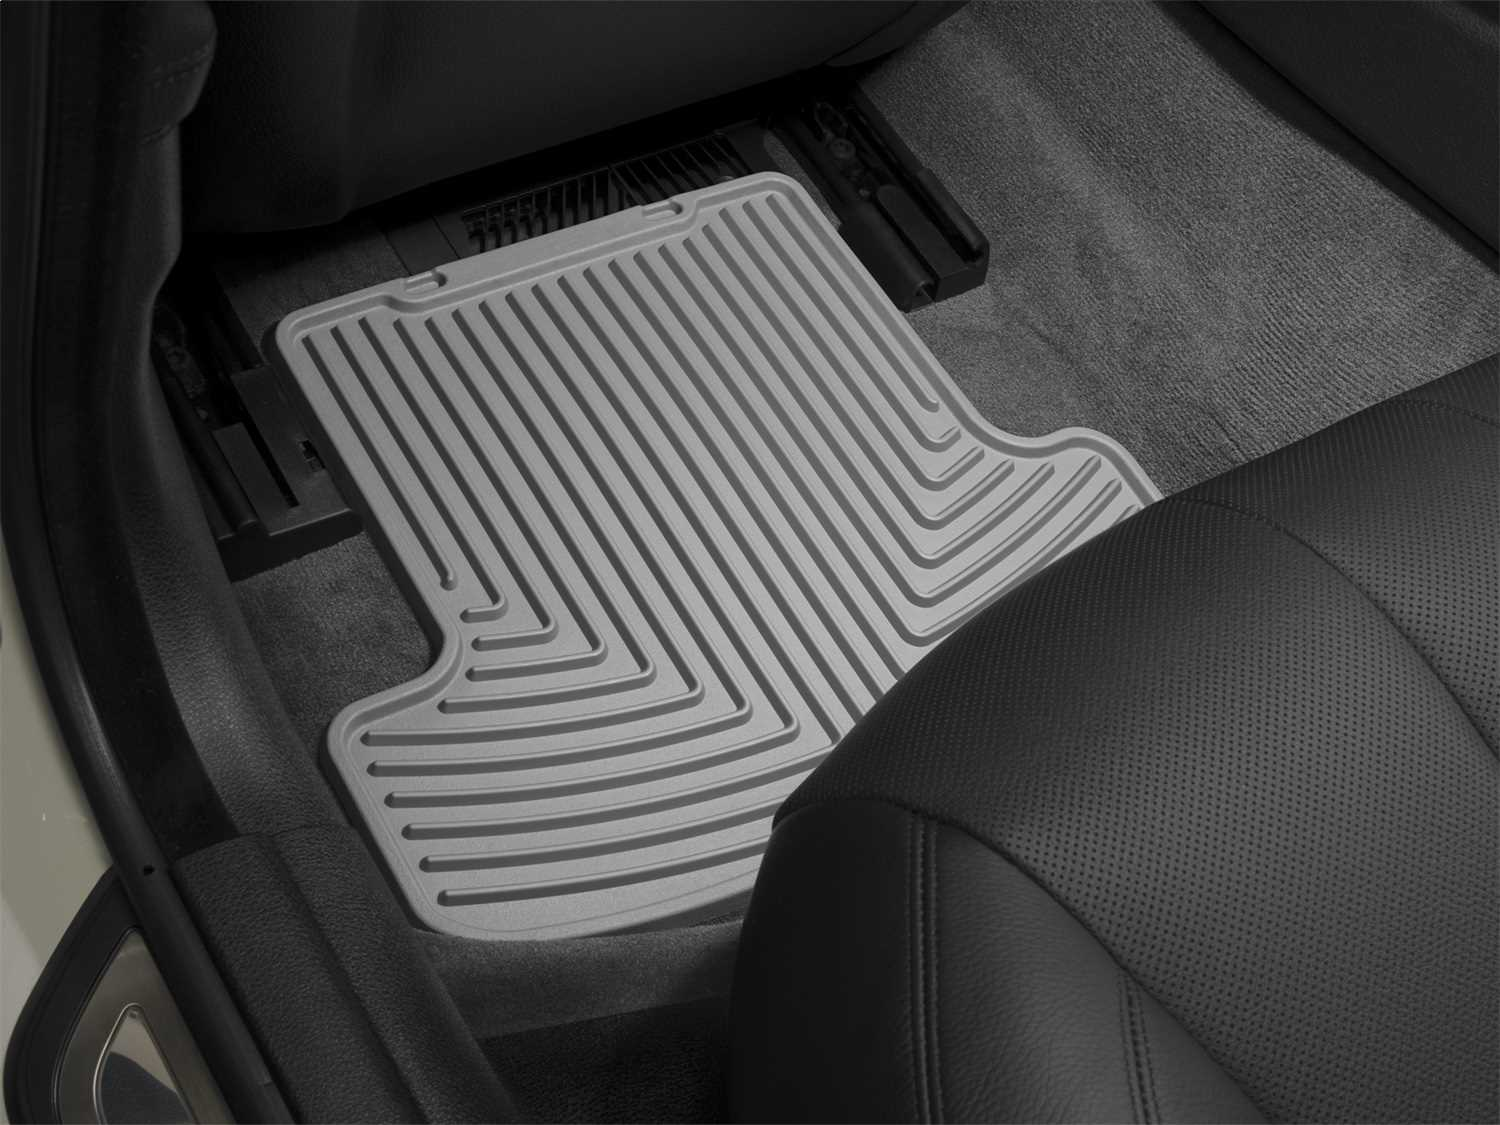 W146GR WeatherTech All Weather Floor Mats